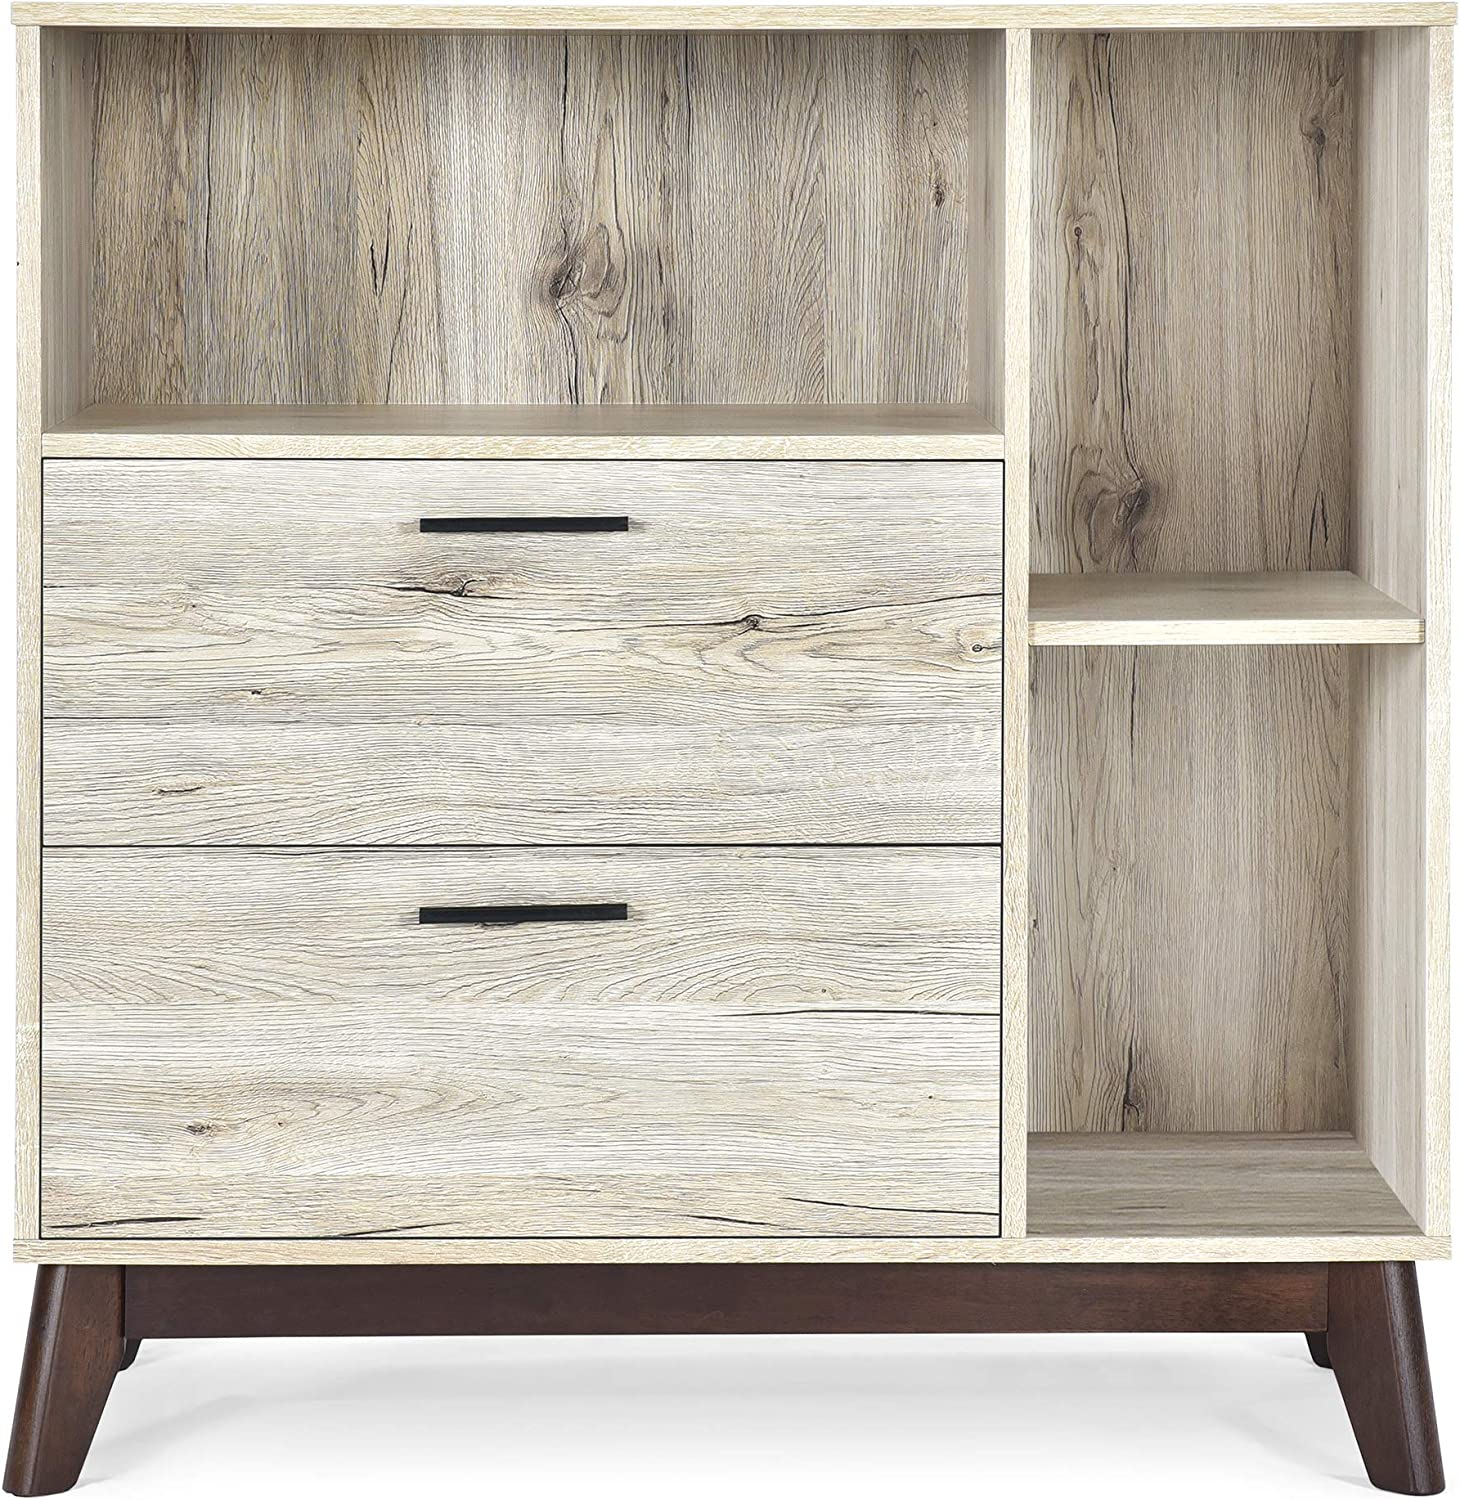 Max 66% OFF Christopher Knight Home 313954 CABINETS Sanremo + Wenge Oak Sales